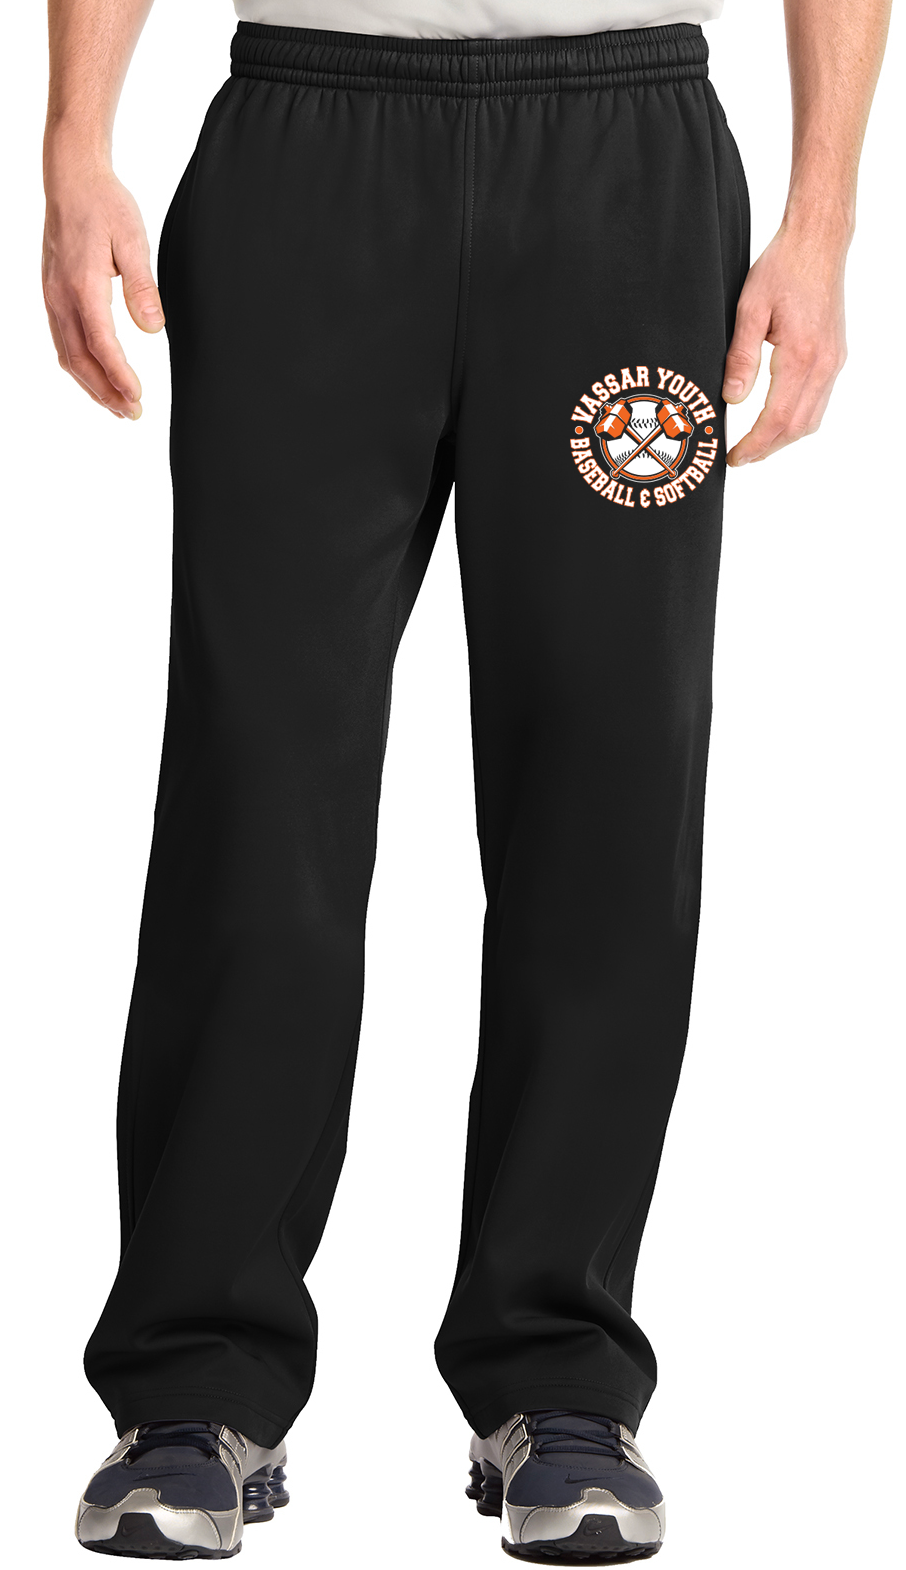 #10 Adult - Performance Polyester DriFit Warm Up Pants